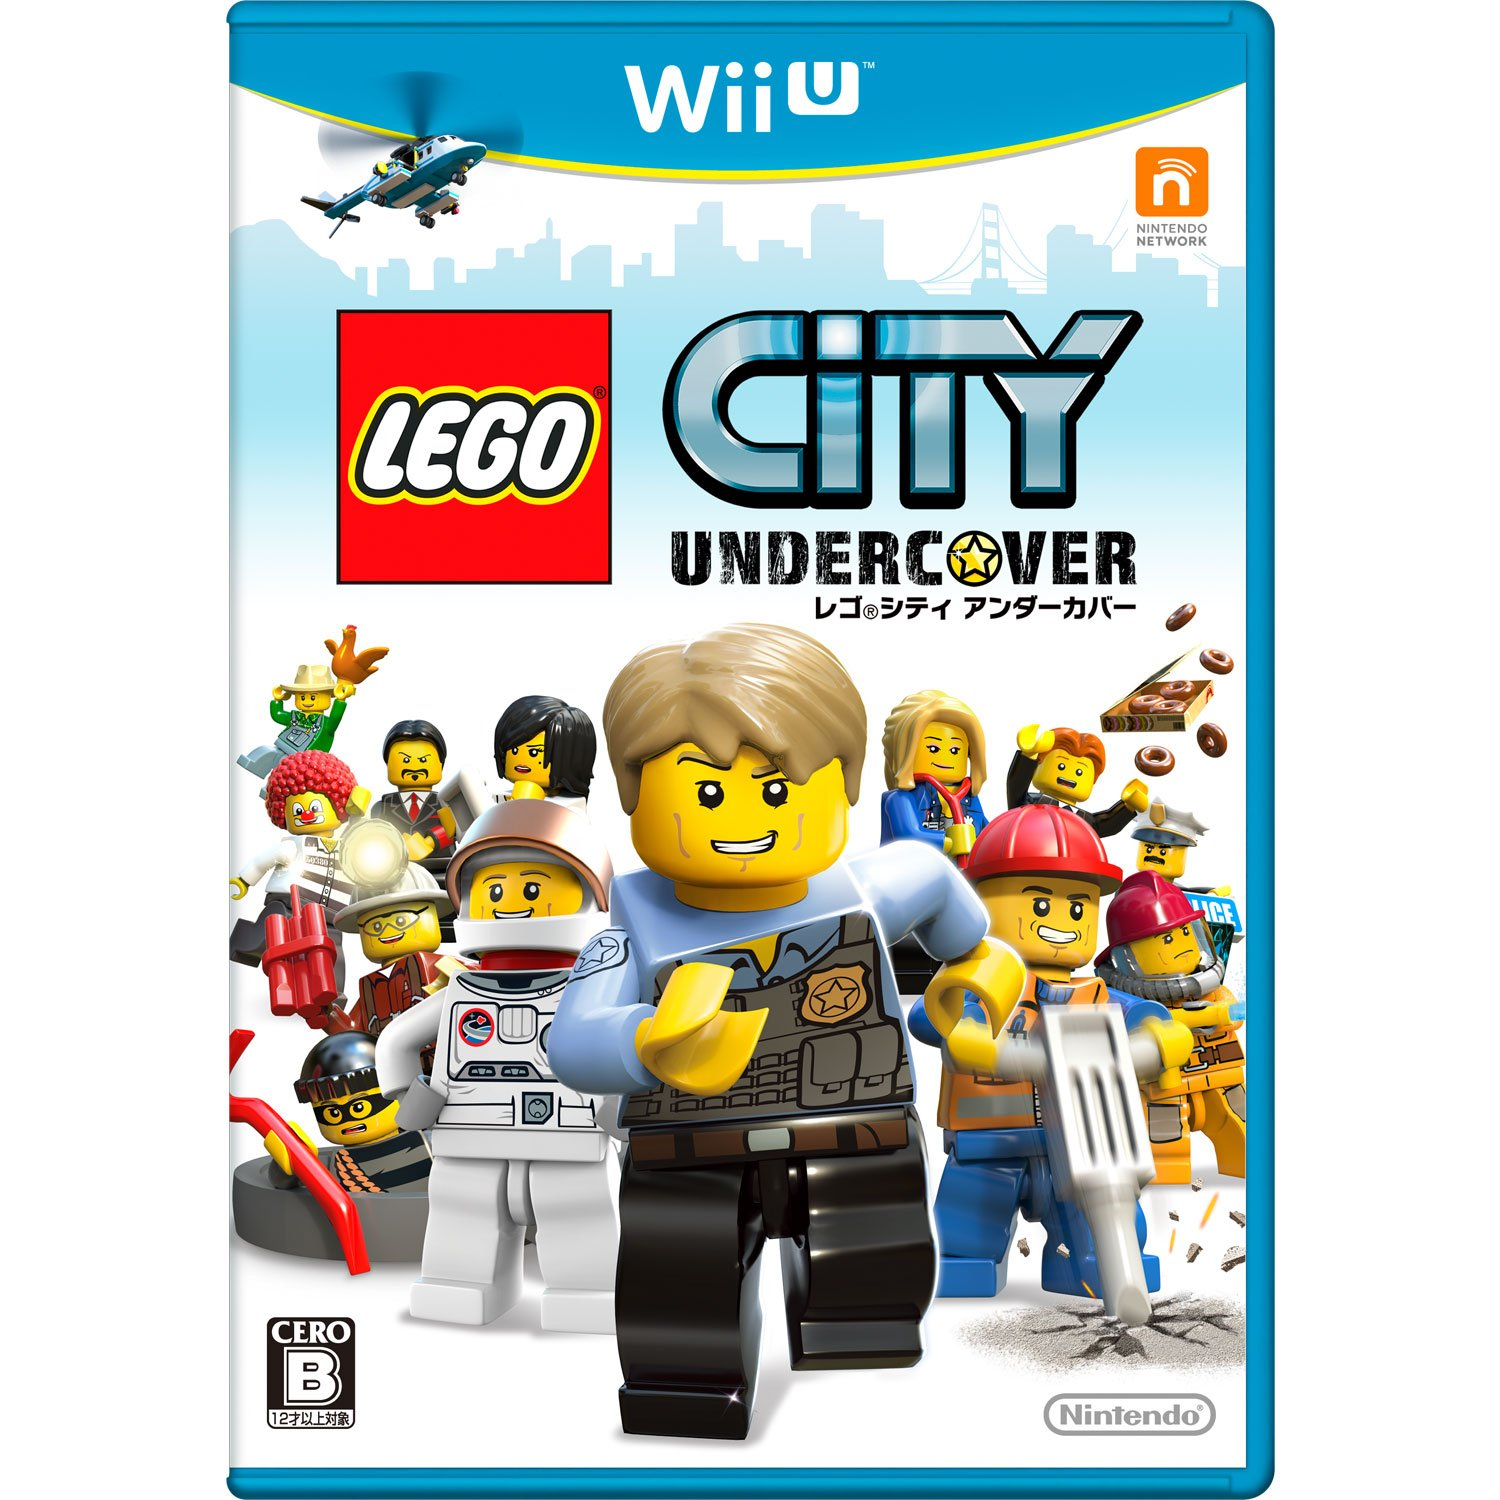 LEGO (R) City under cover